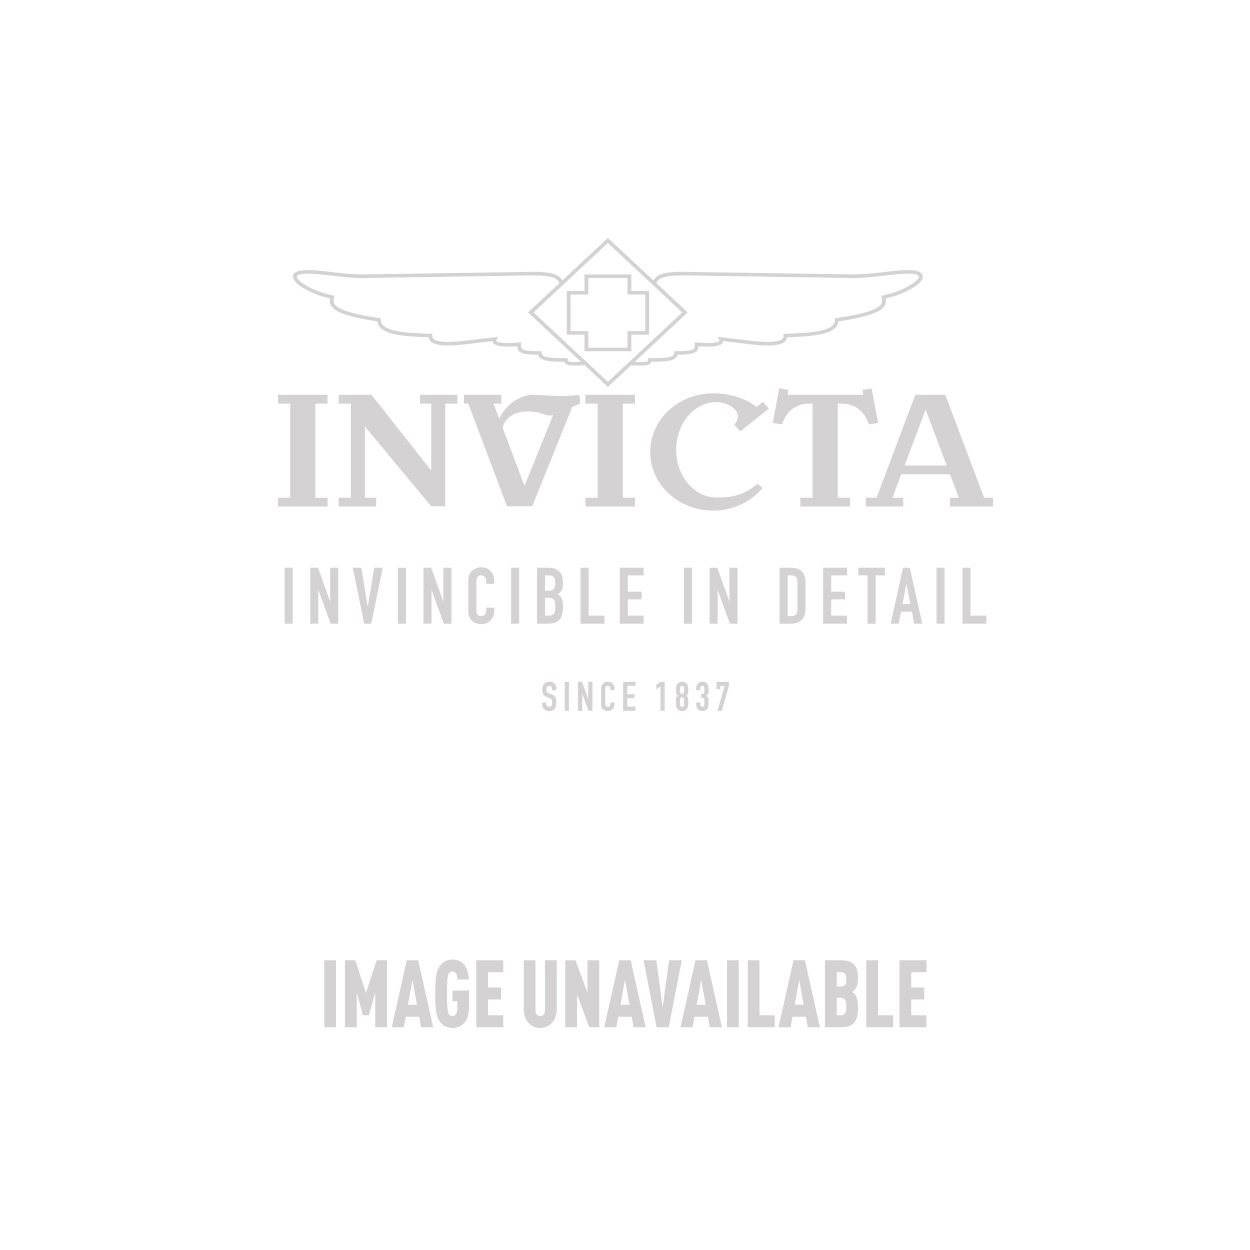 Invicta I-Force Quartz Watch - Stainless Steel case with Black tone Leather band - Model 2771